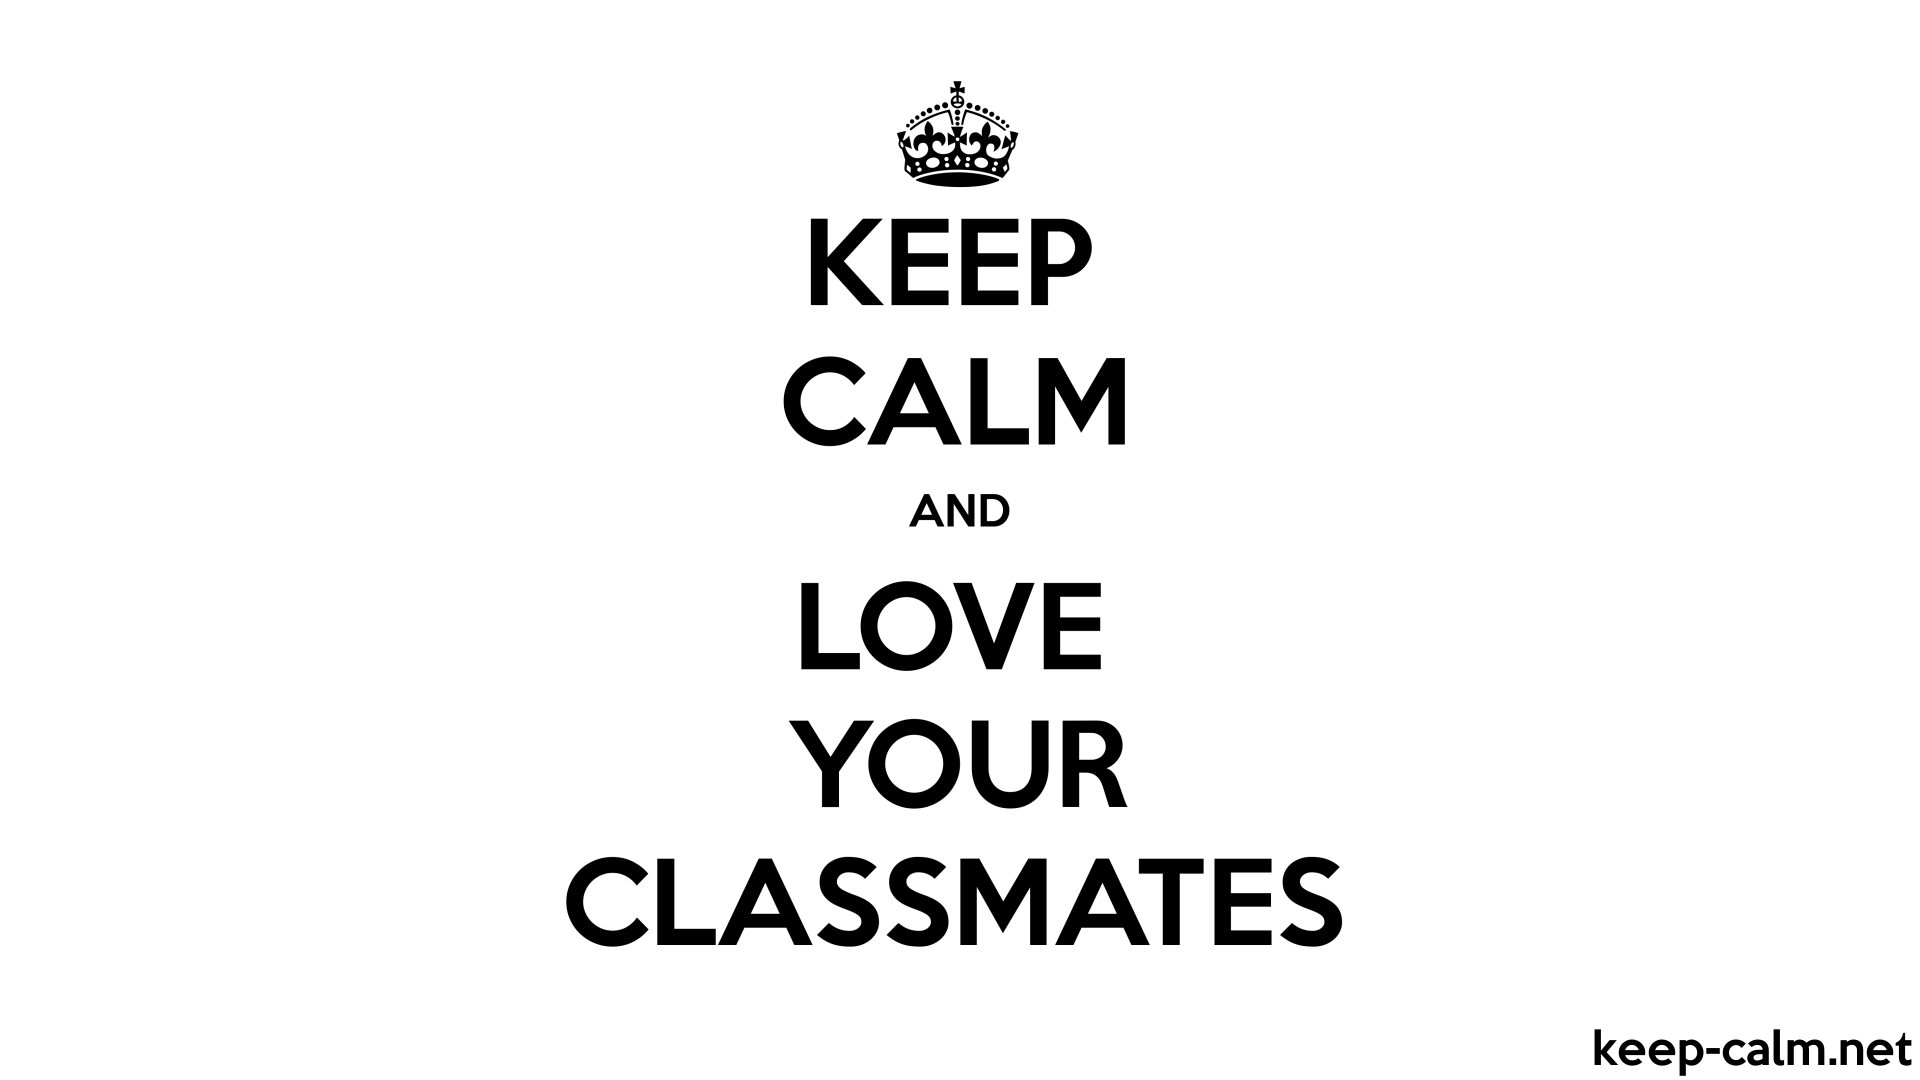 keep calm and love your classmates 1920 1080 black white